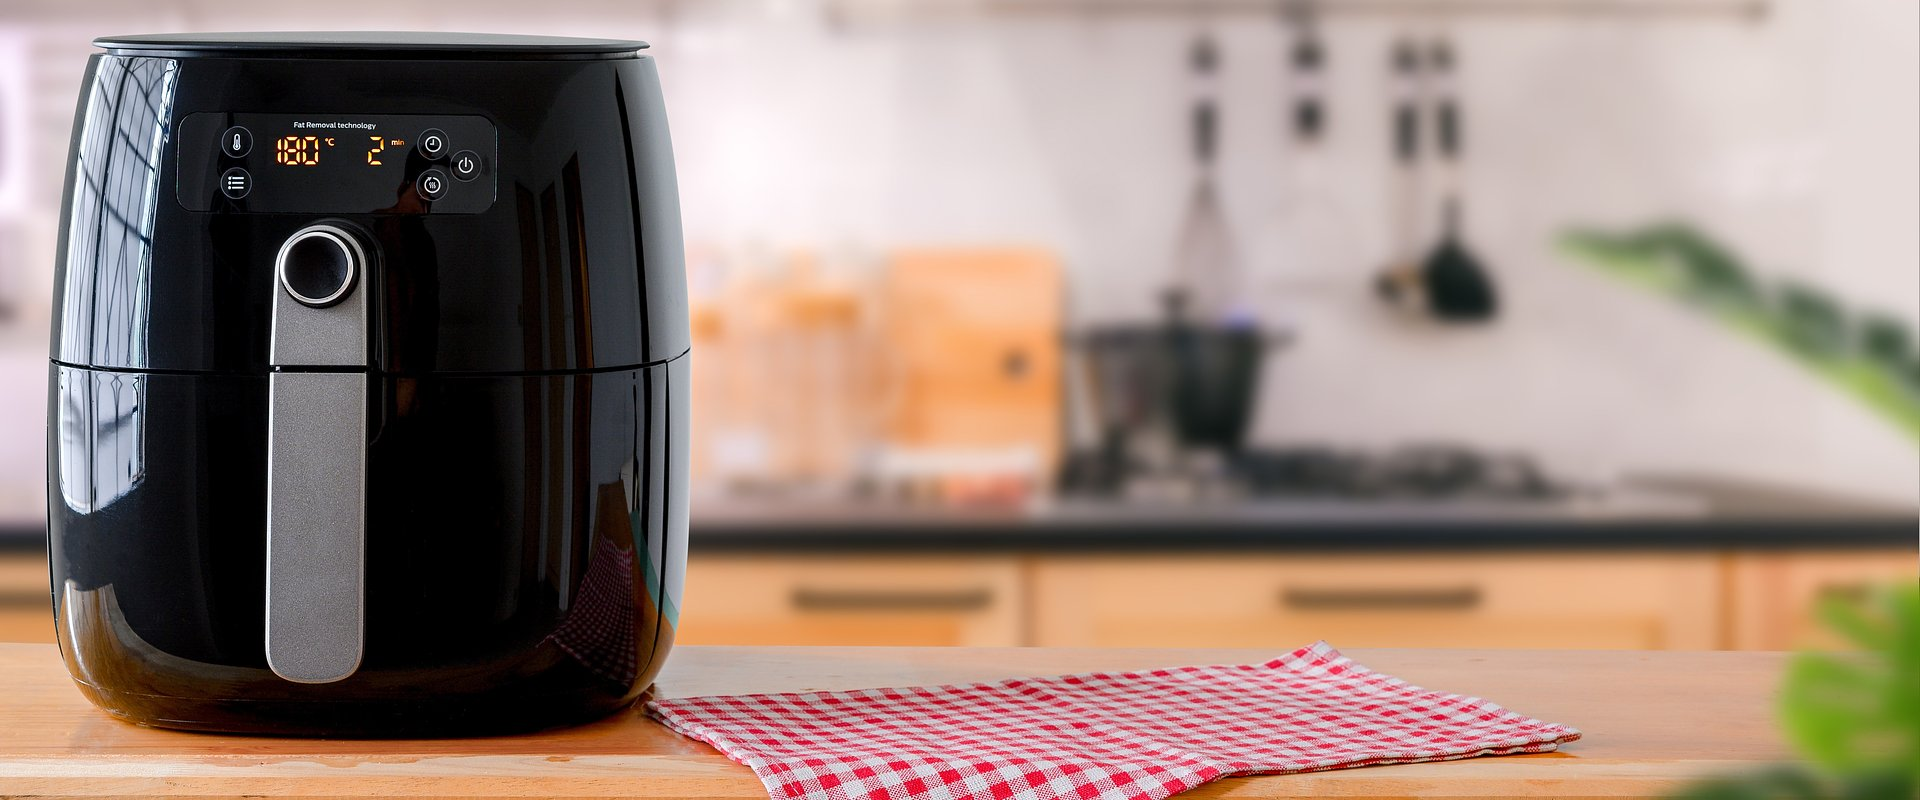 Summer Food Ideas for Your Air Fryer